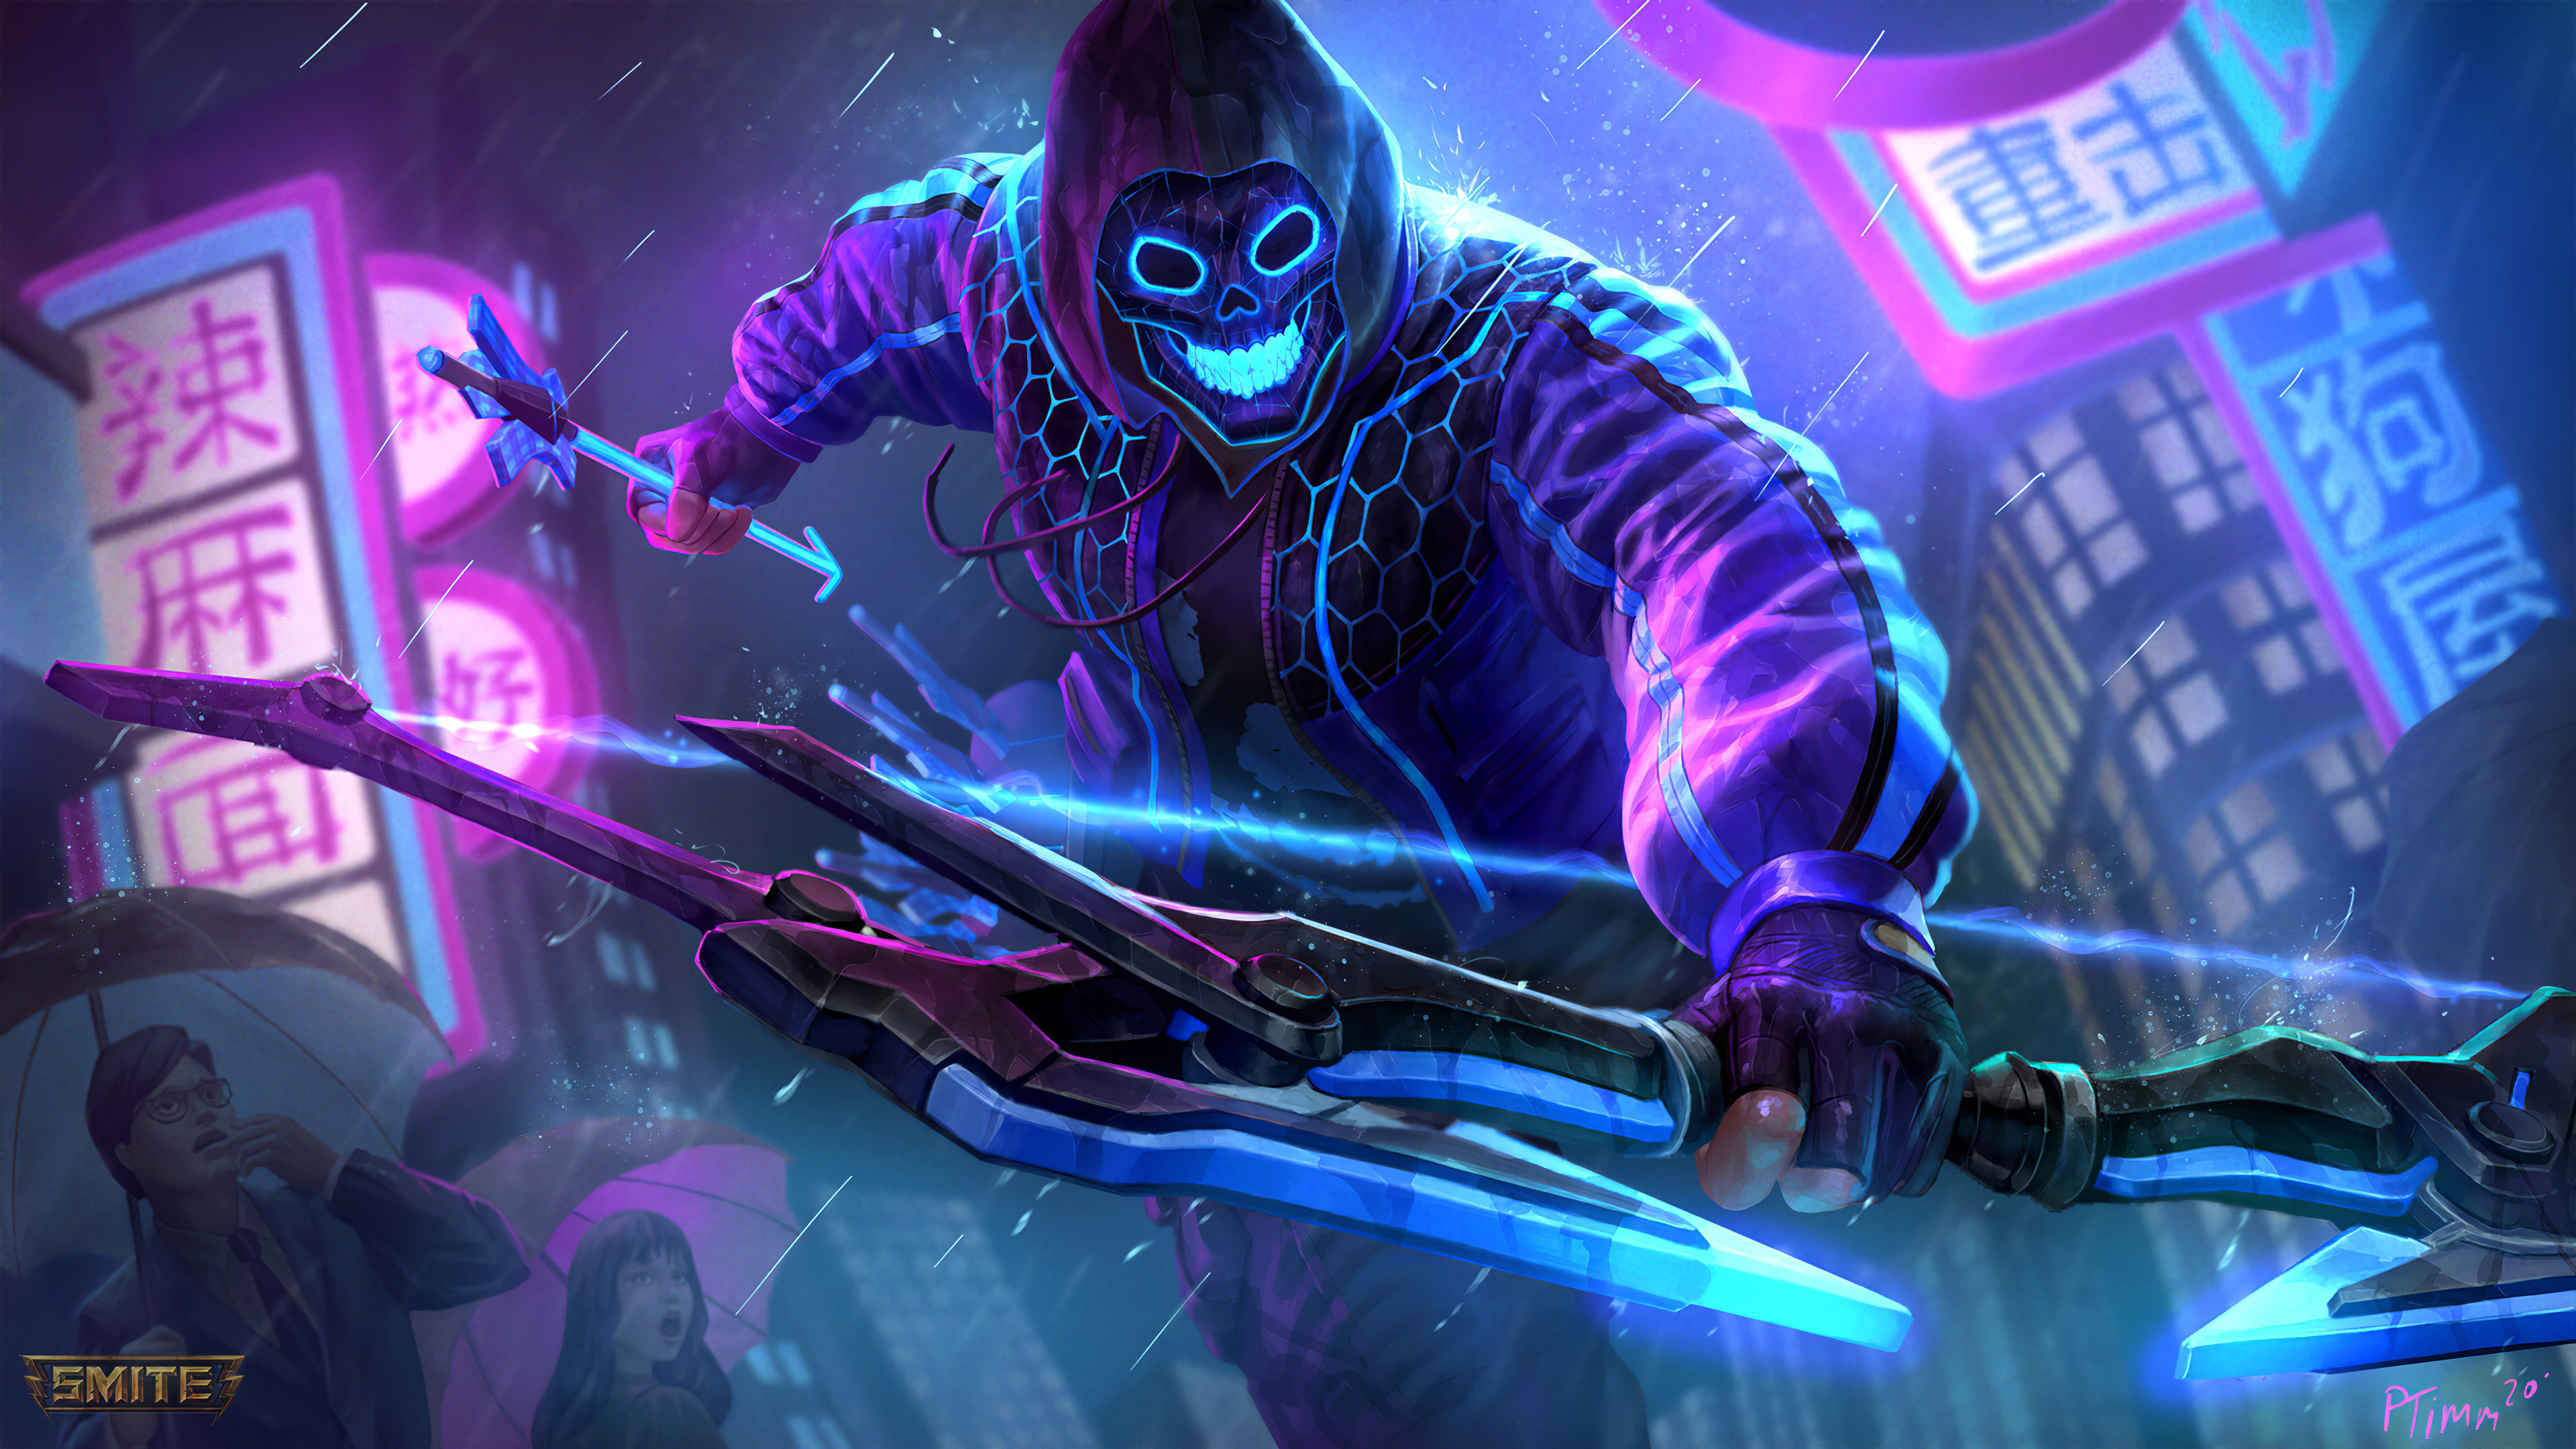 Smite Neon Hero Hd Games 4k Wallpapers Images Backgrounds Photos And Pictures